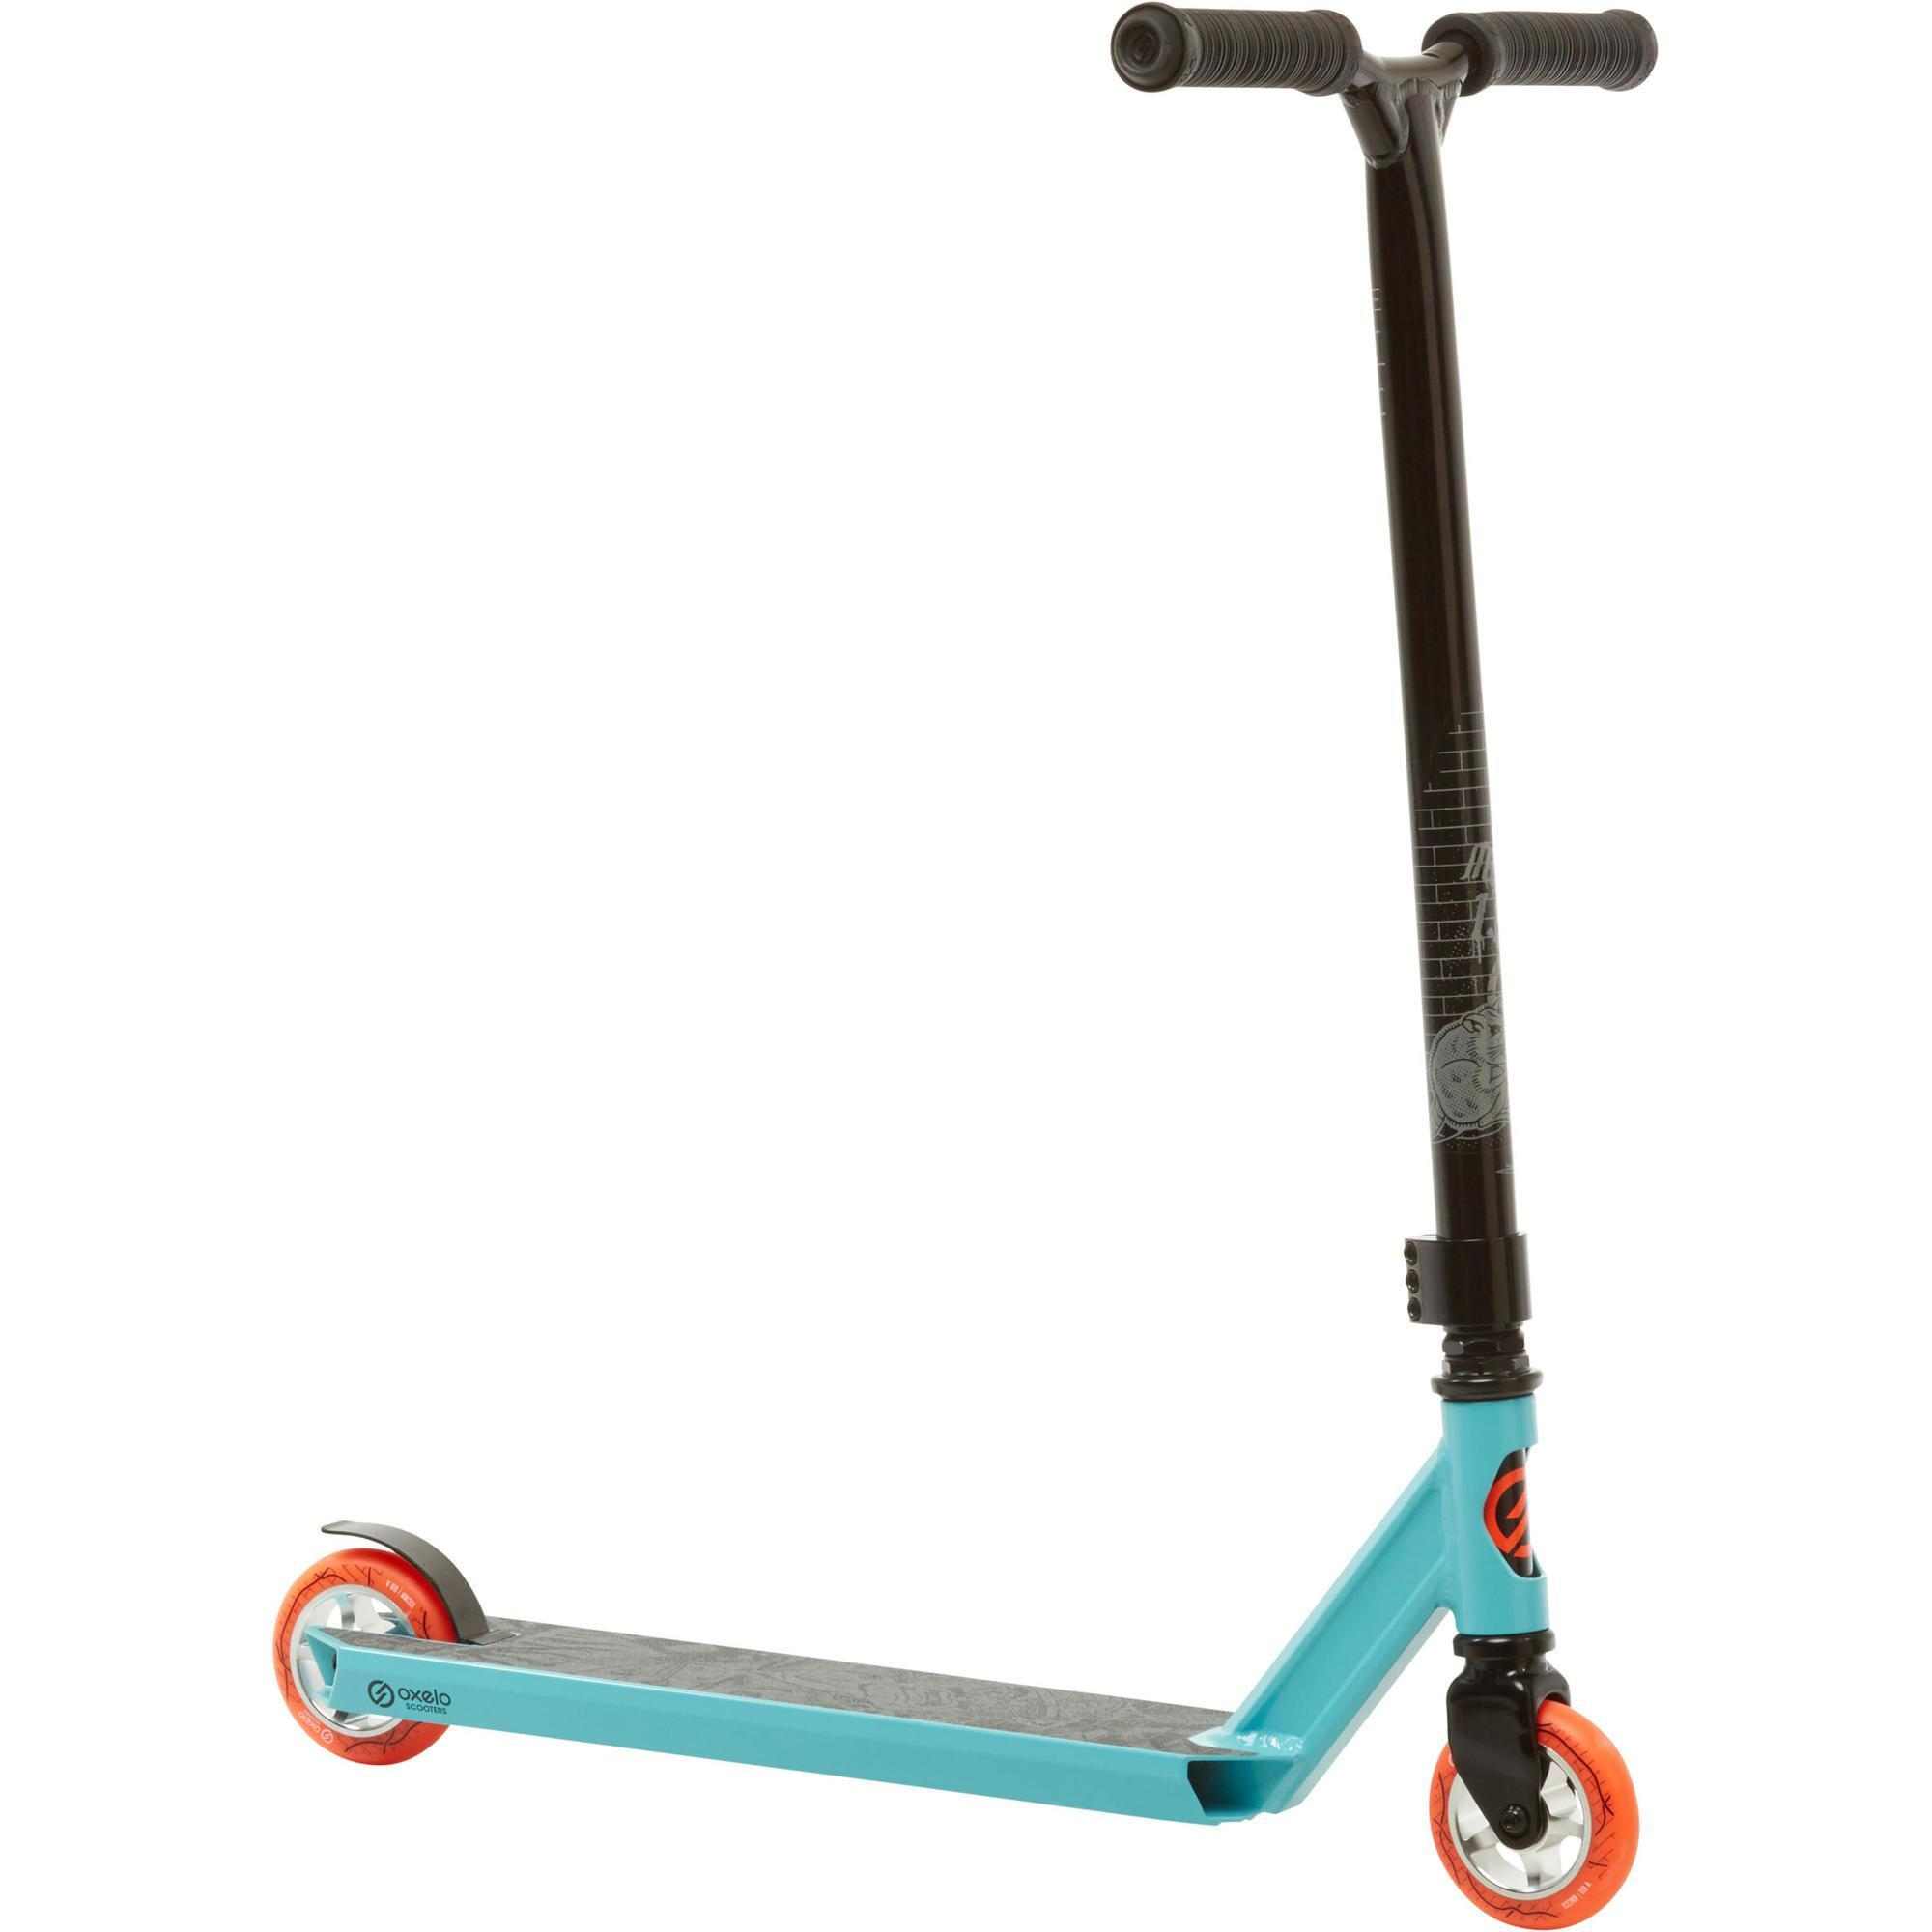 stunt scooter roller mf 1 8 freestyle oxelo decathlon. Black Bedroom Furniture Sets. Home Design Ideas